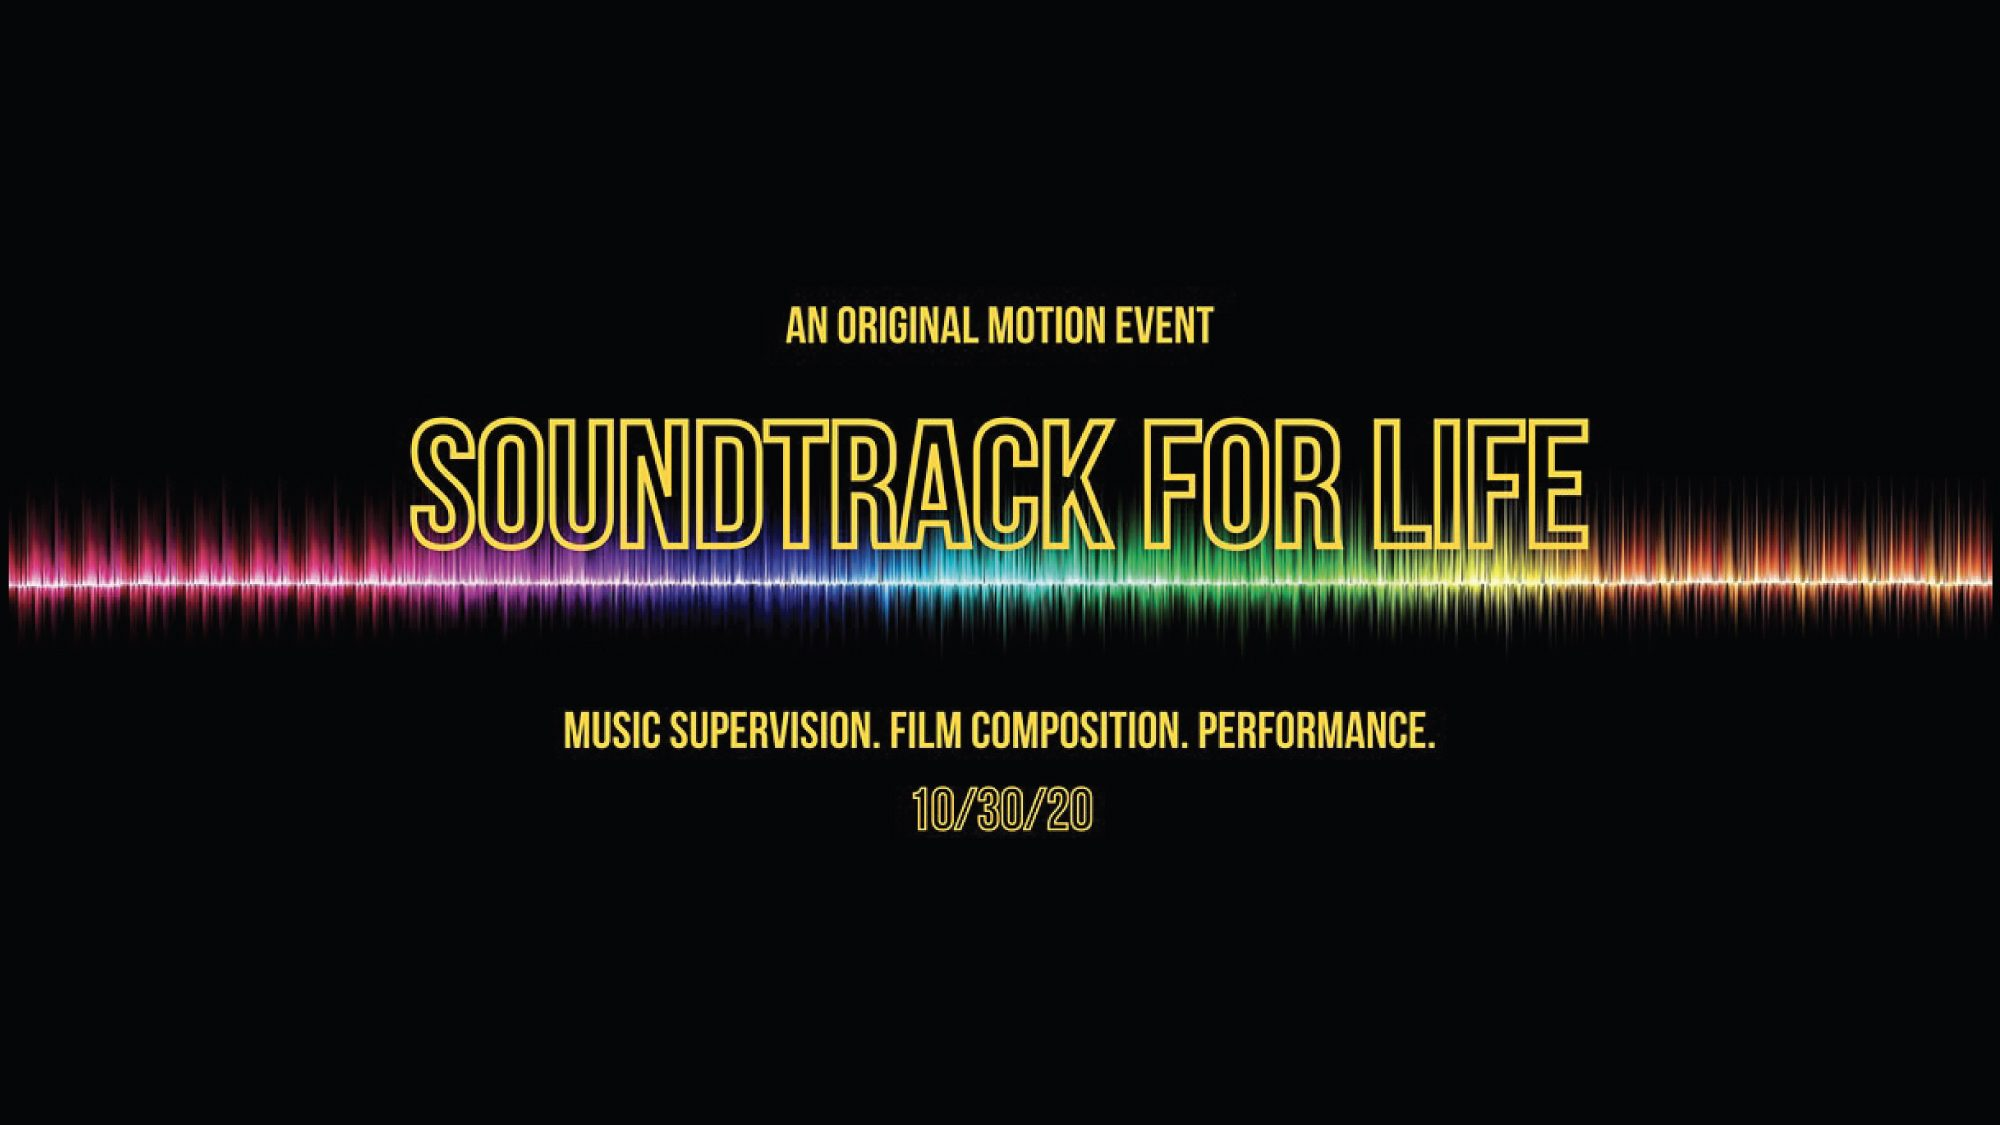 Soundtrack for Life text with rainbow-colored soundwave